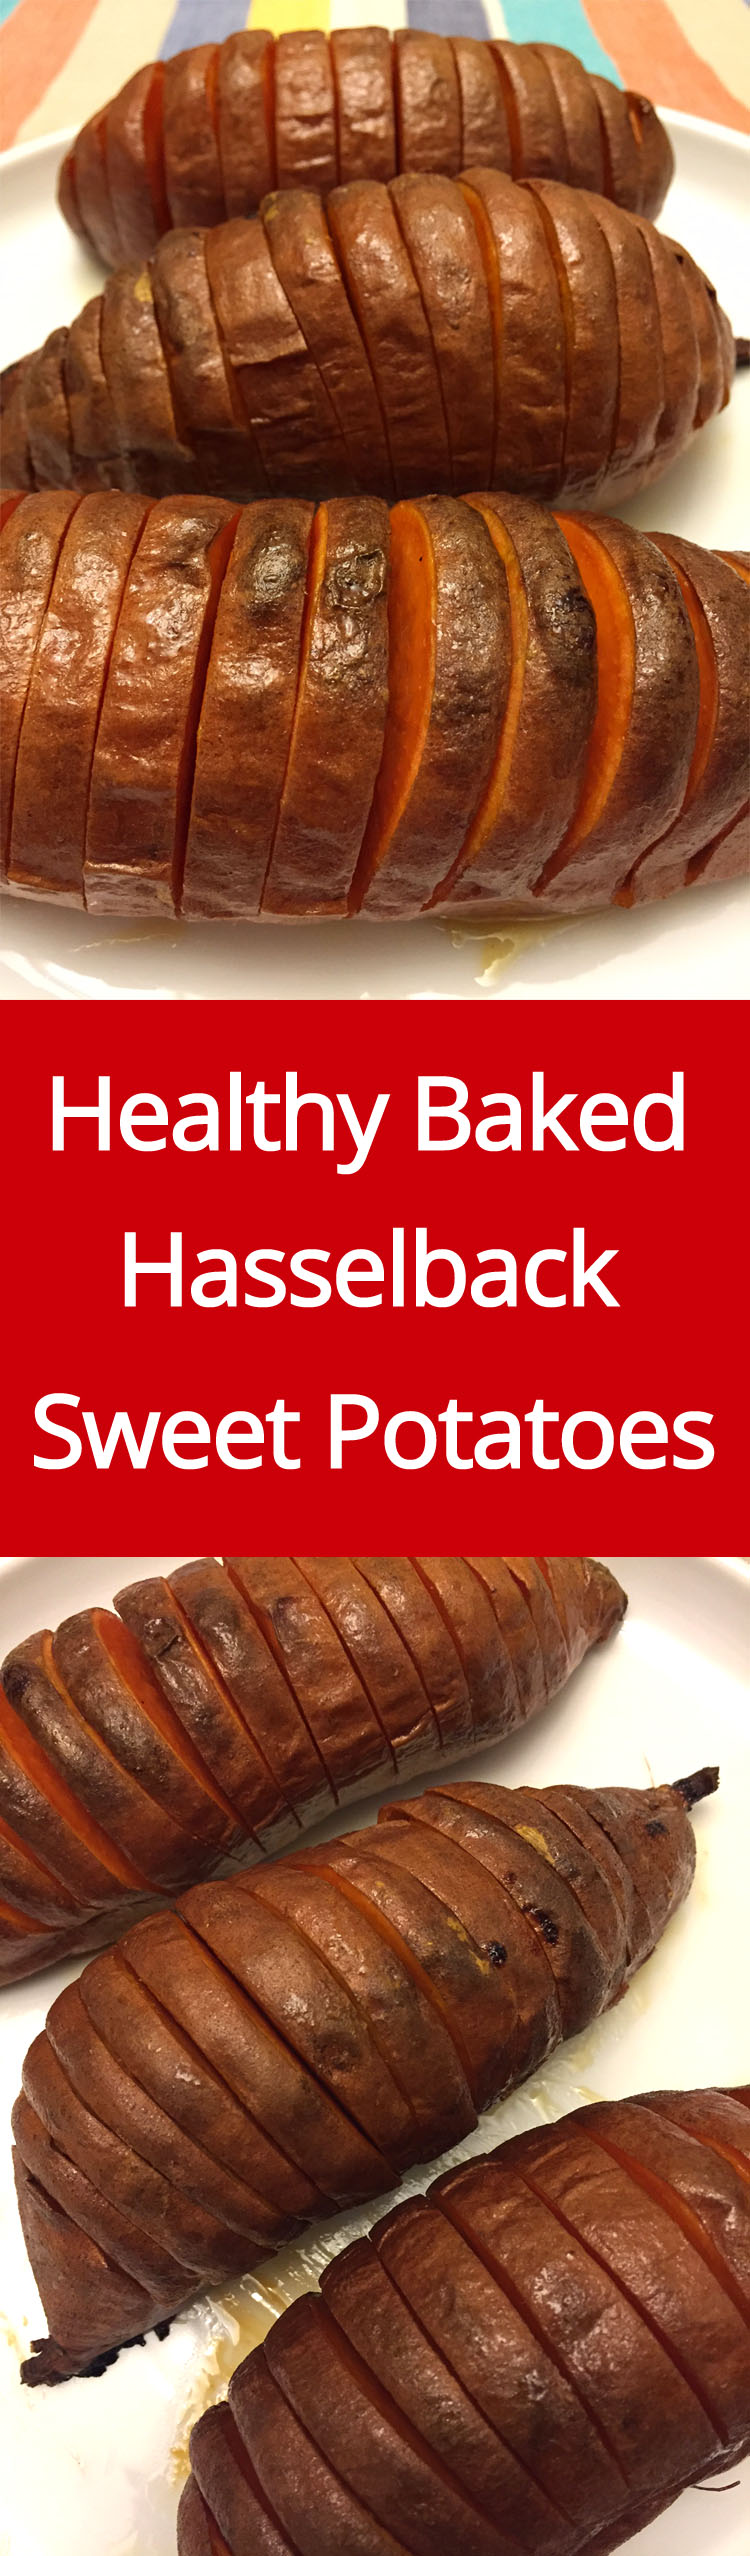 These hasselback baked sweet potatoes are amazing! They look so festive, they make a perfect holiday dish! Best of all, they are super healthy! Gluten-free, paleo, they are perfect for any diet!